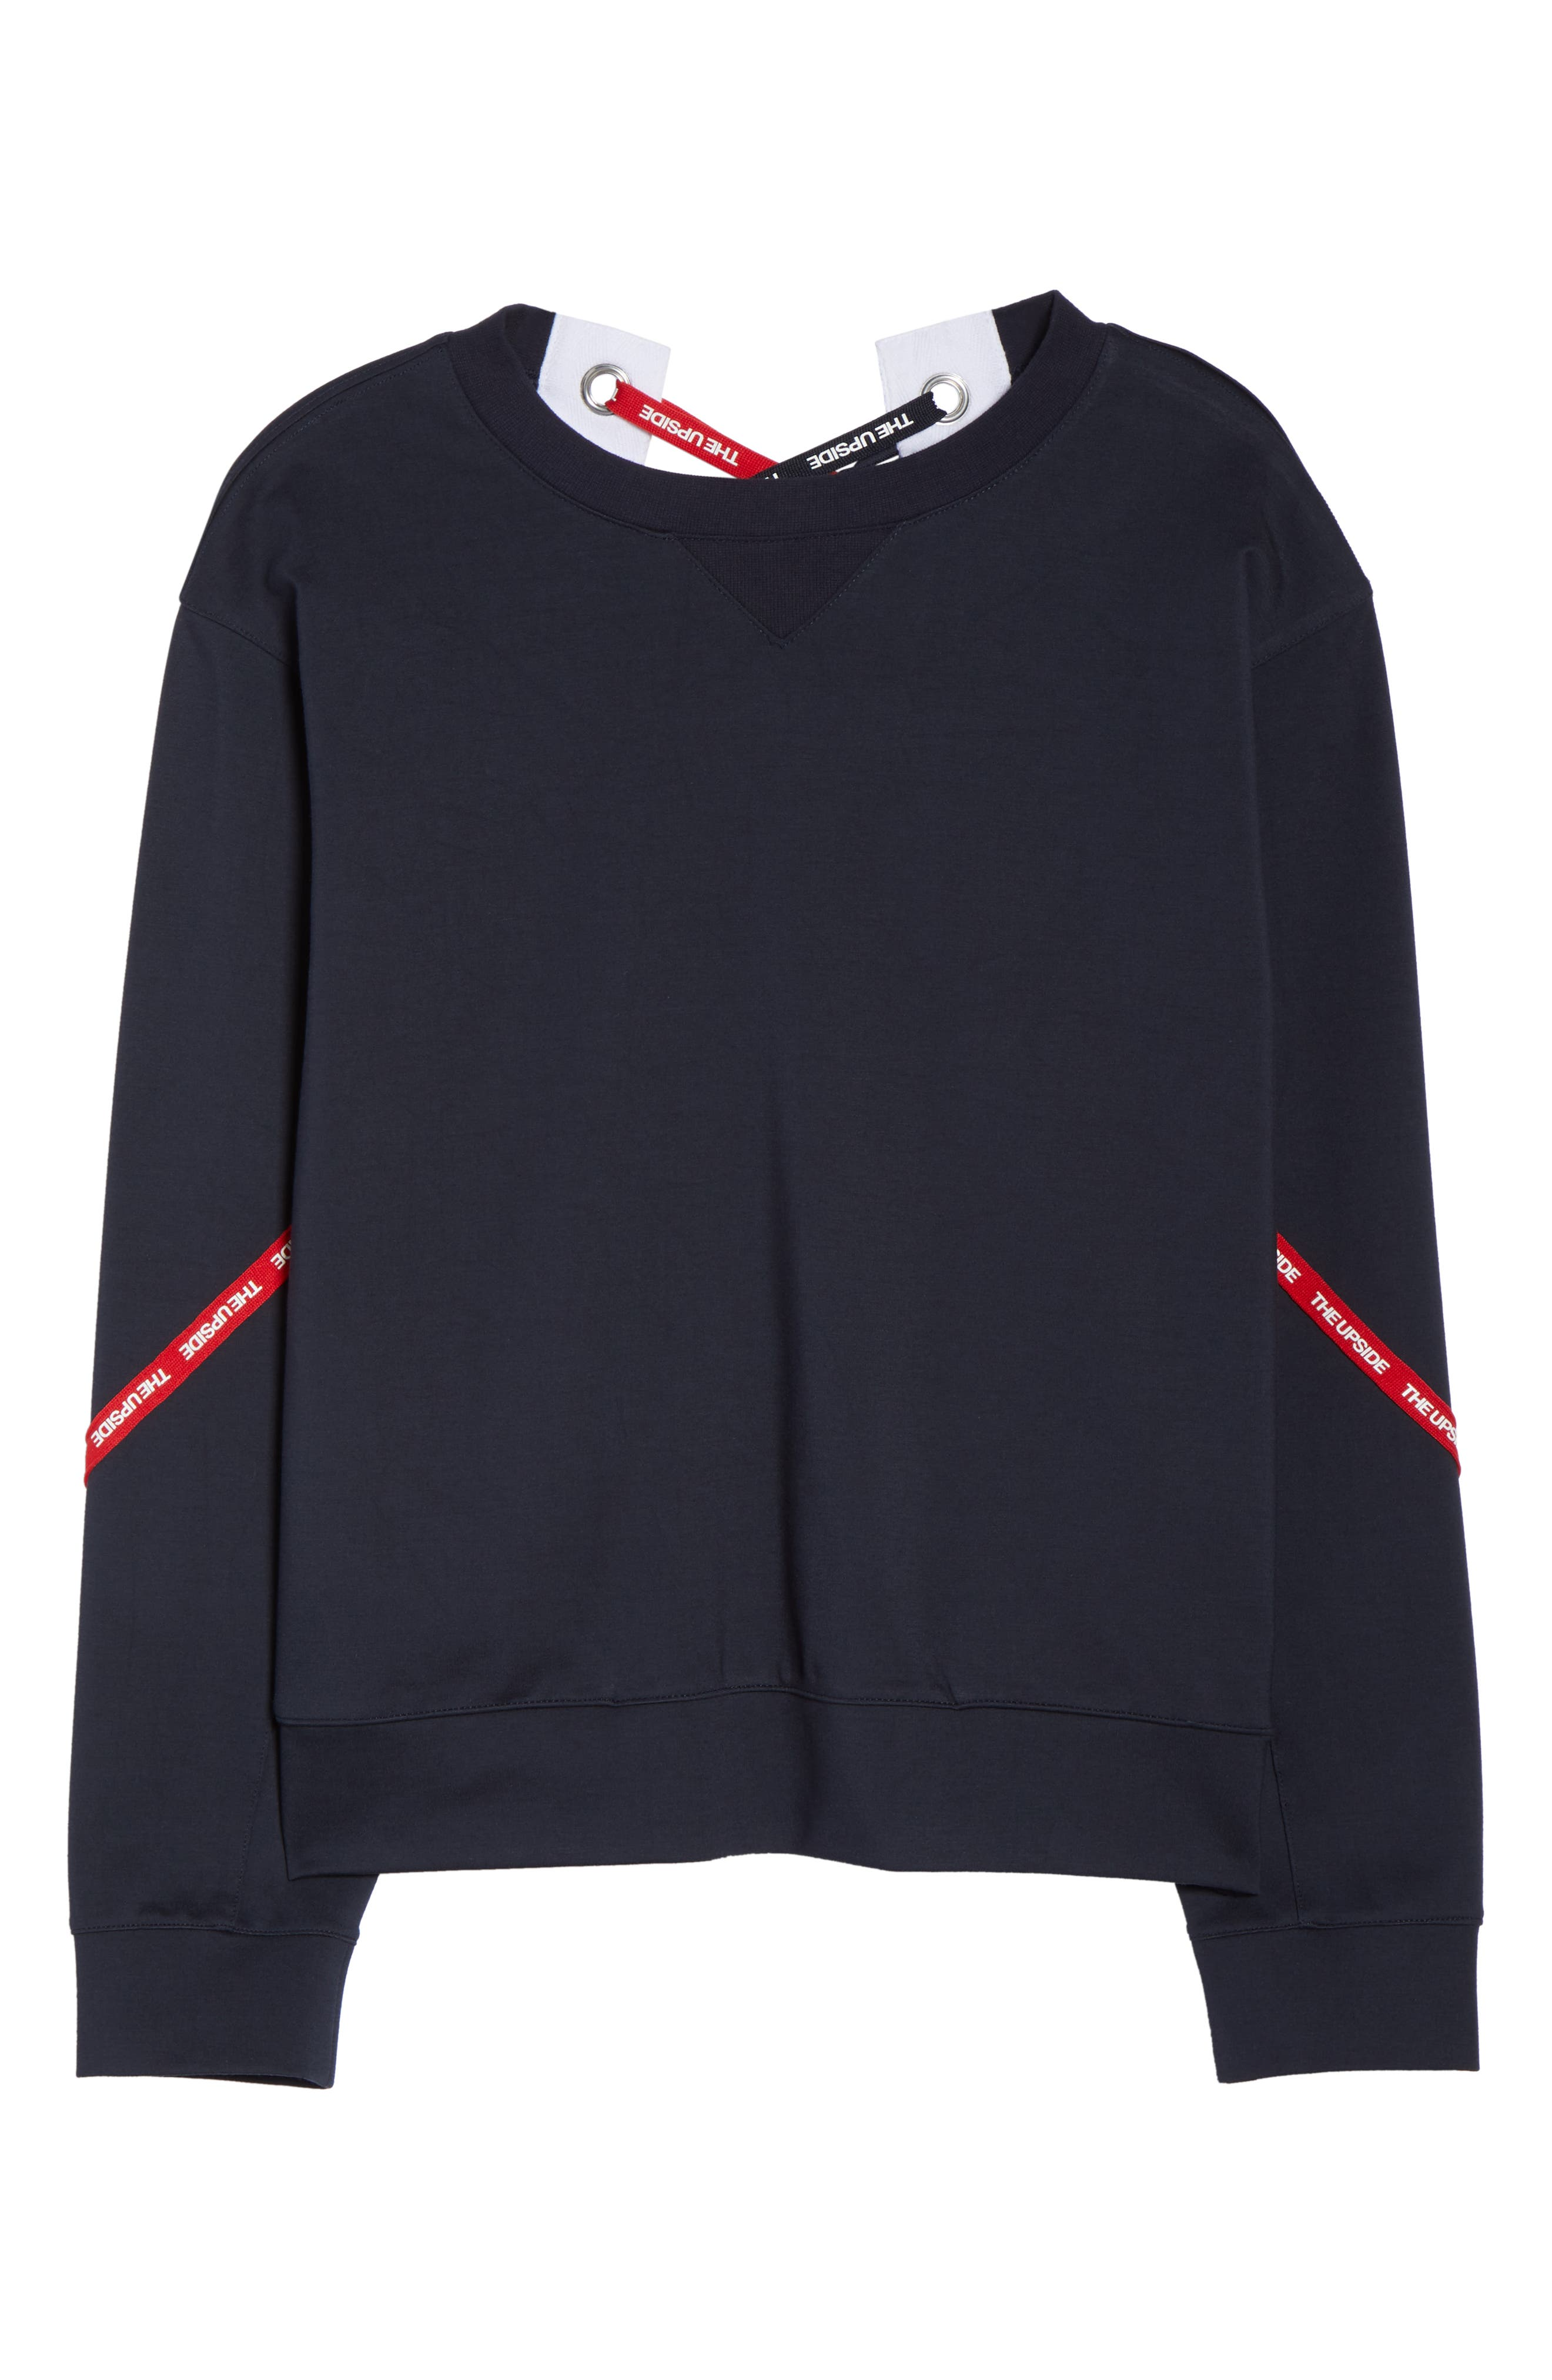 Bardot Crew Sweatshirt,                             Alternate thumbnail 7, color,                             400